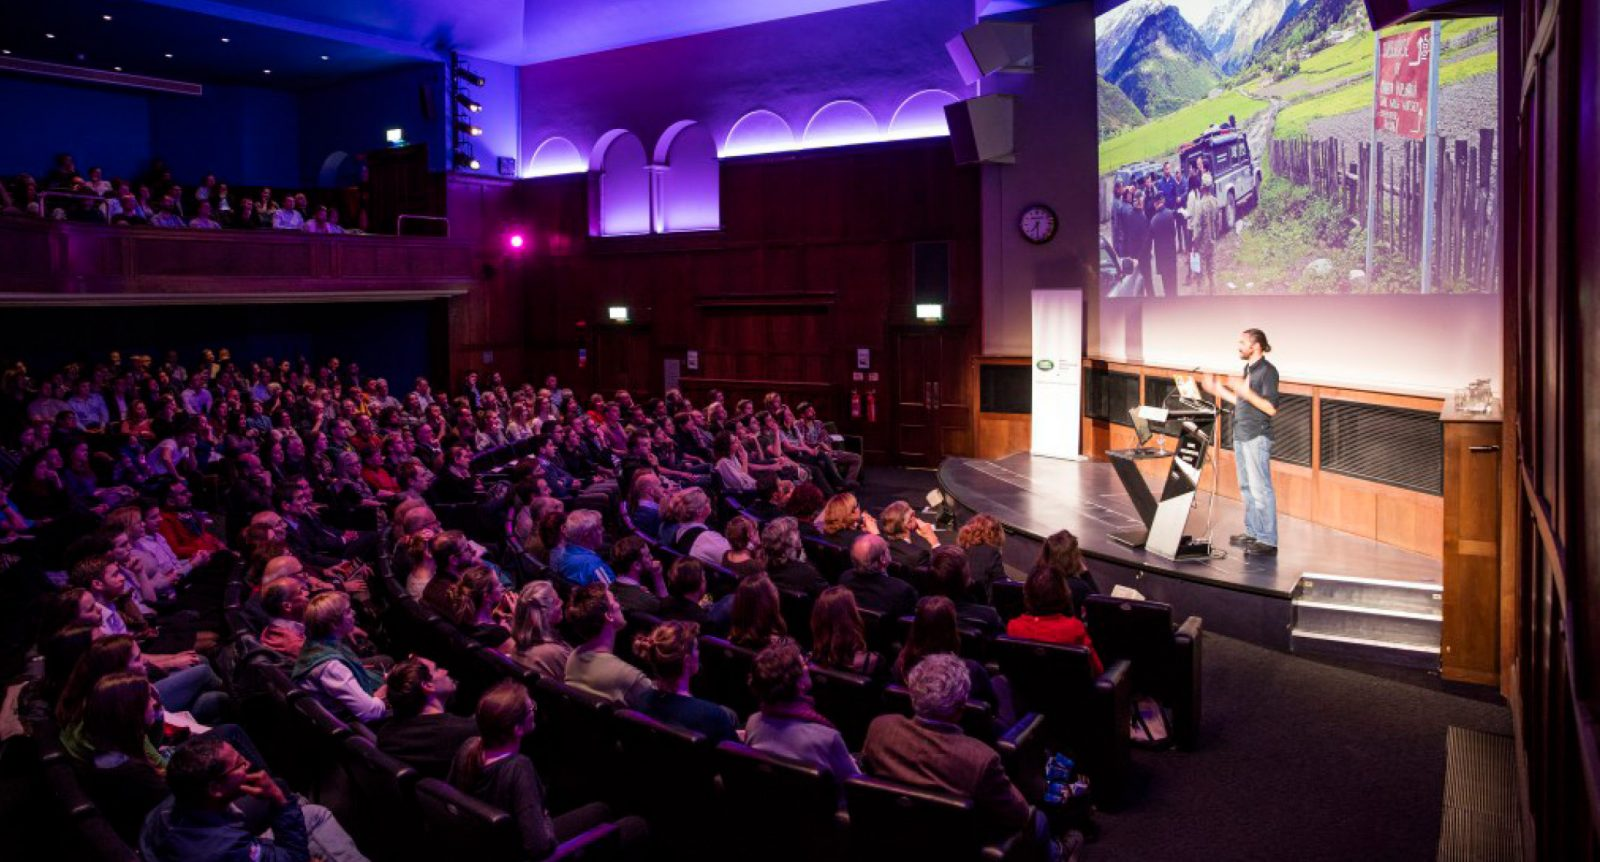 Royal Geographical Society talk by Tom Allen, Armenia expedition with Secret Compass, joined by Tom Allen of the Transcaucasian trail4